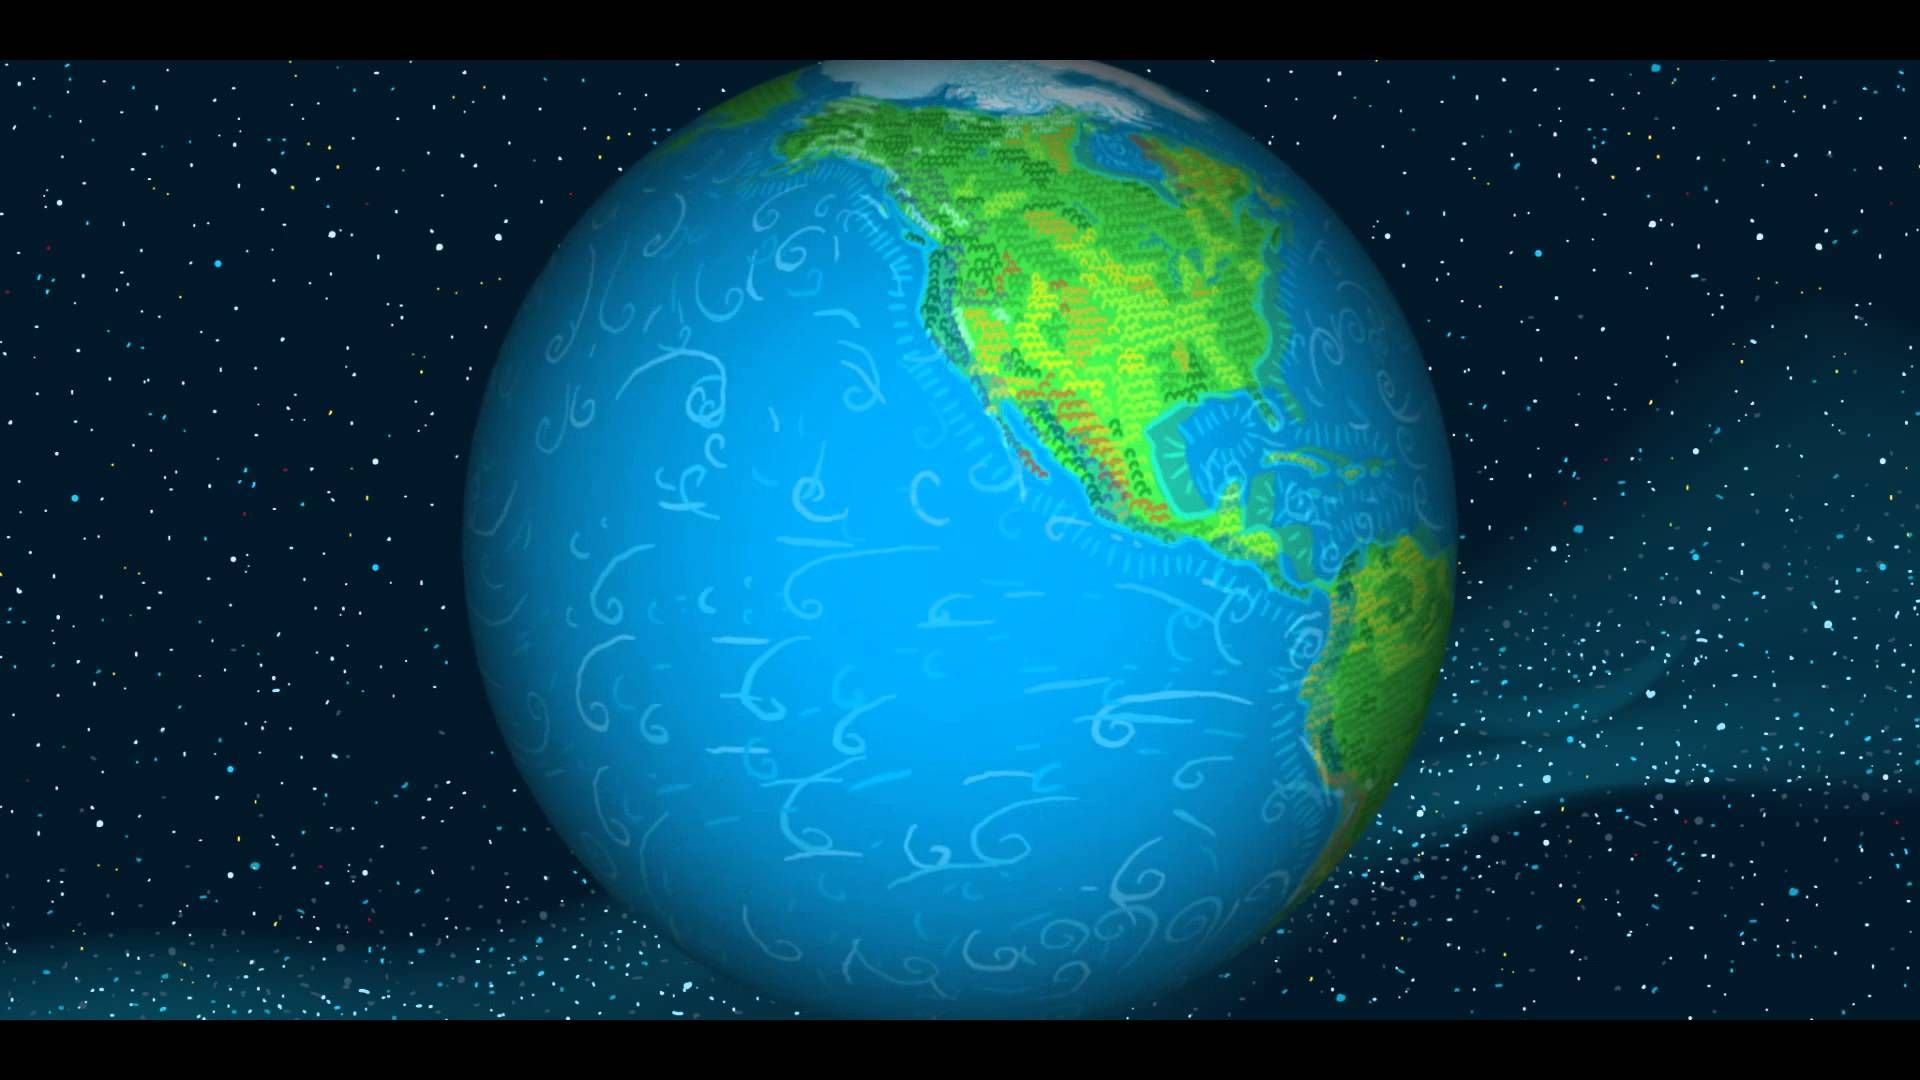 Memorize The 7 Continents And 5 Oceans With This Easy Catchy Song And Video From Nancy Kopman